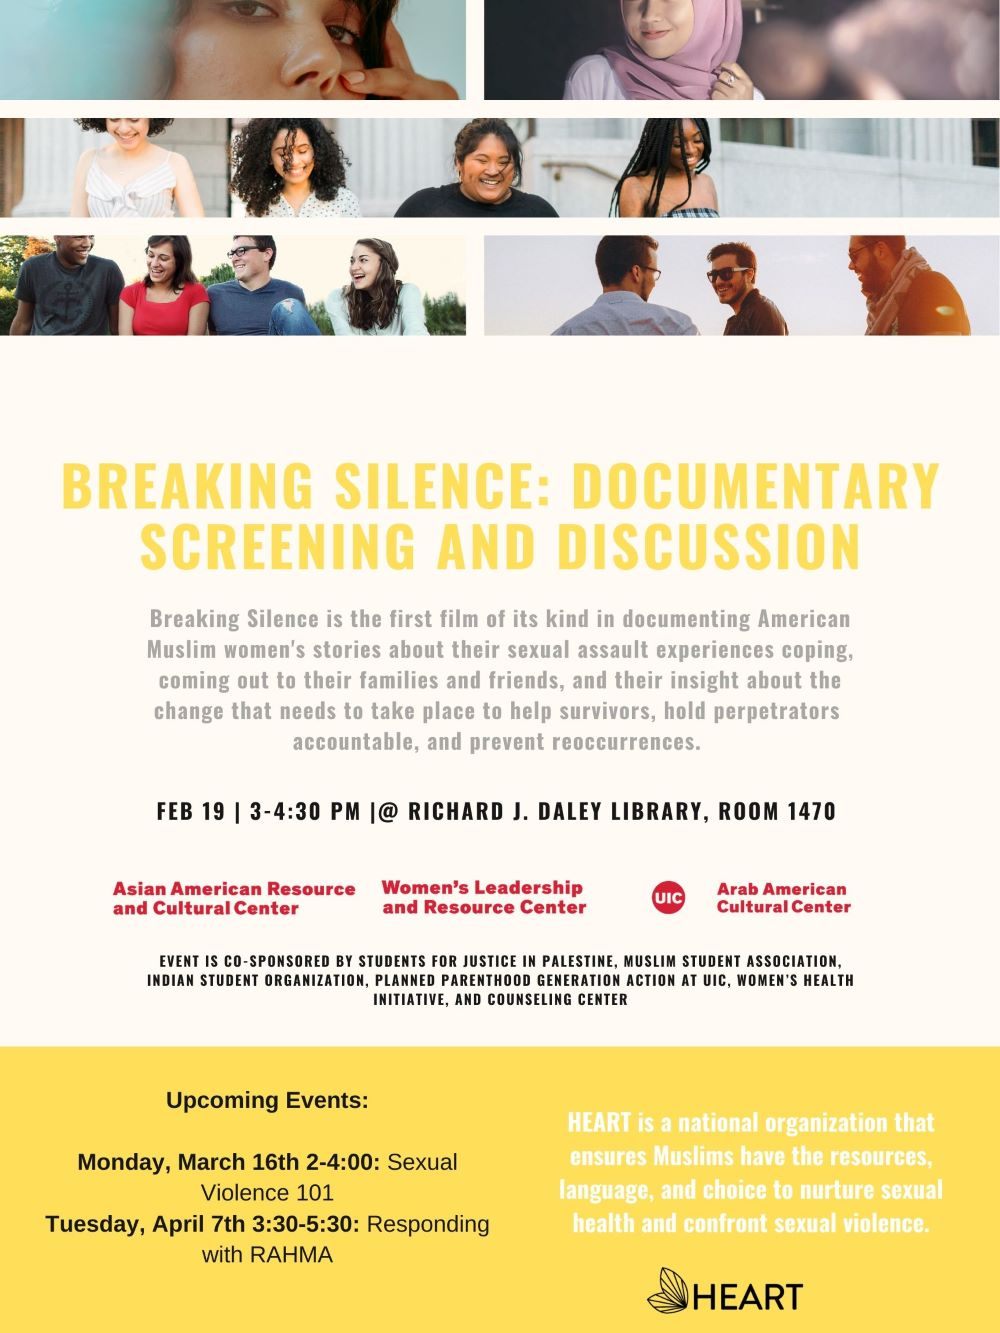 Flyer has three sections, the top is a photo collage of different people's faces. The middle band is a series of writing starting with Title of Event: Breaking Silence: Documentary Screening and Discussion. a short description of the event, the date and location and the sponsoring organizations. The bottom third is a yellow band that lists the upcoming two workshops in this series and provides the mission of the group HEART which is a national organization that ensures Muslims have the resources, language, and choice to nurture sexual health and confront sexual violence.